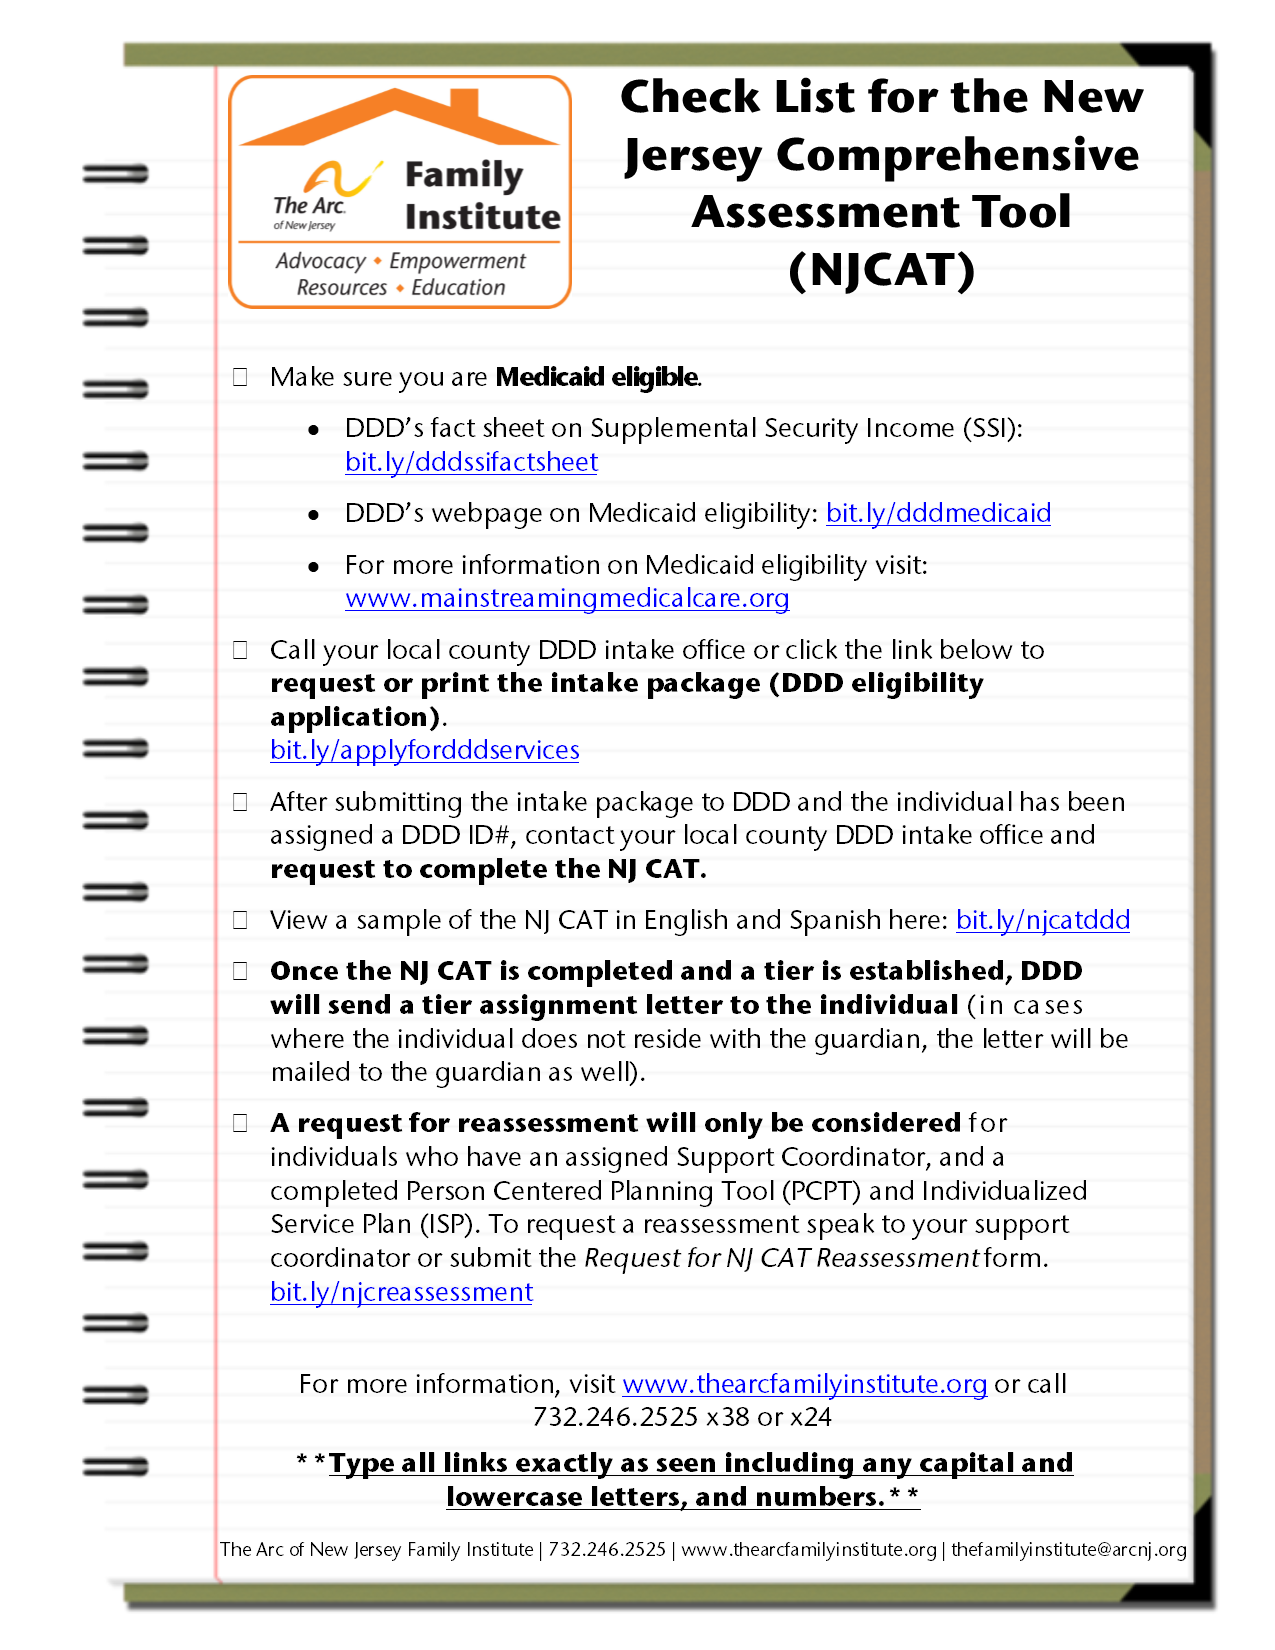 Check List for the New Jersey Comprehensive Assessment Tool (NJ CAT) Checklist